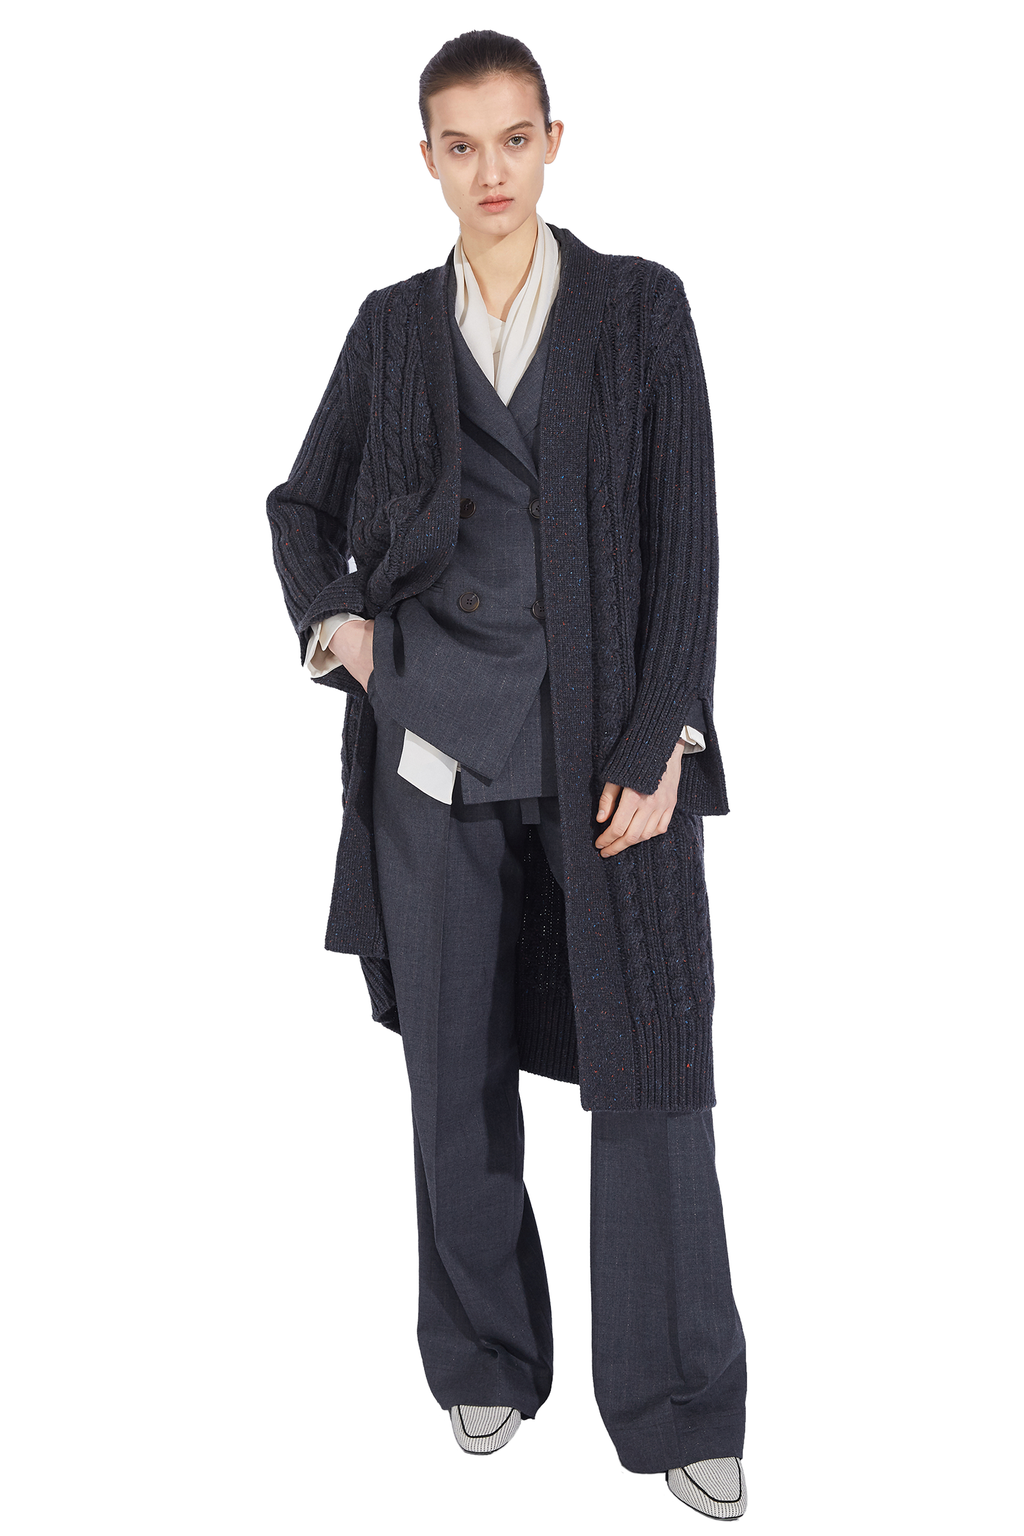 Hemp Pattern Long Cardigan - Black